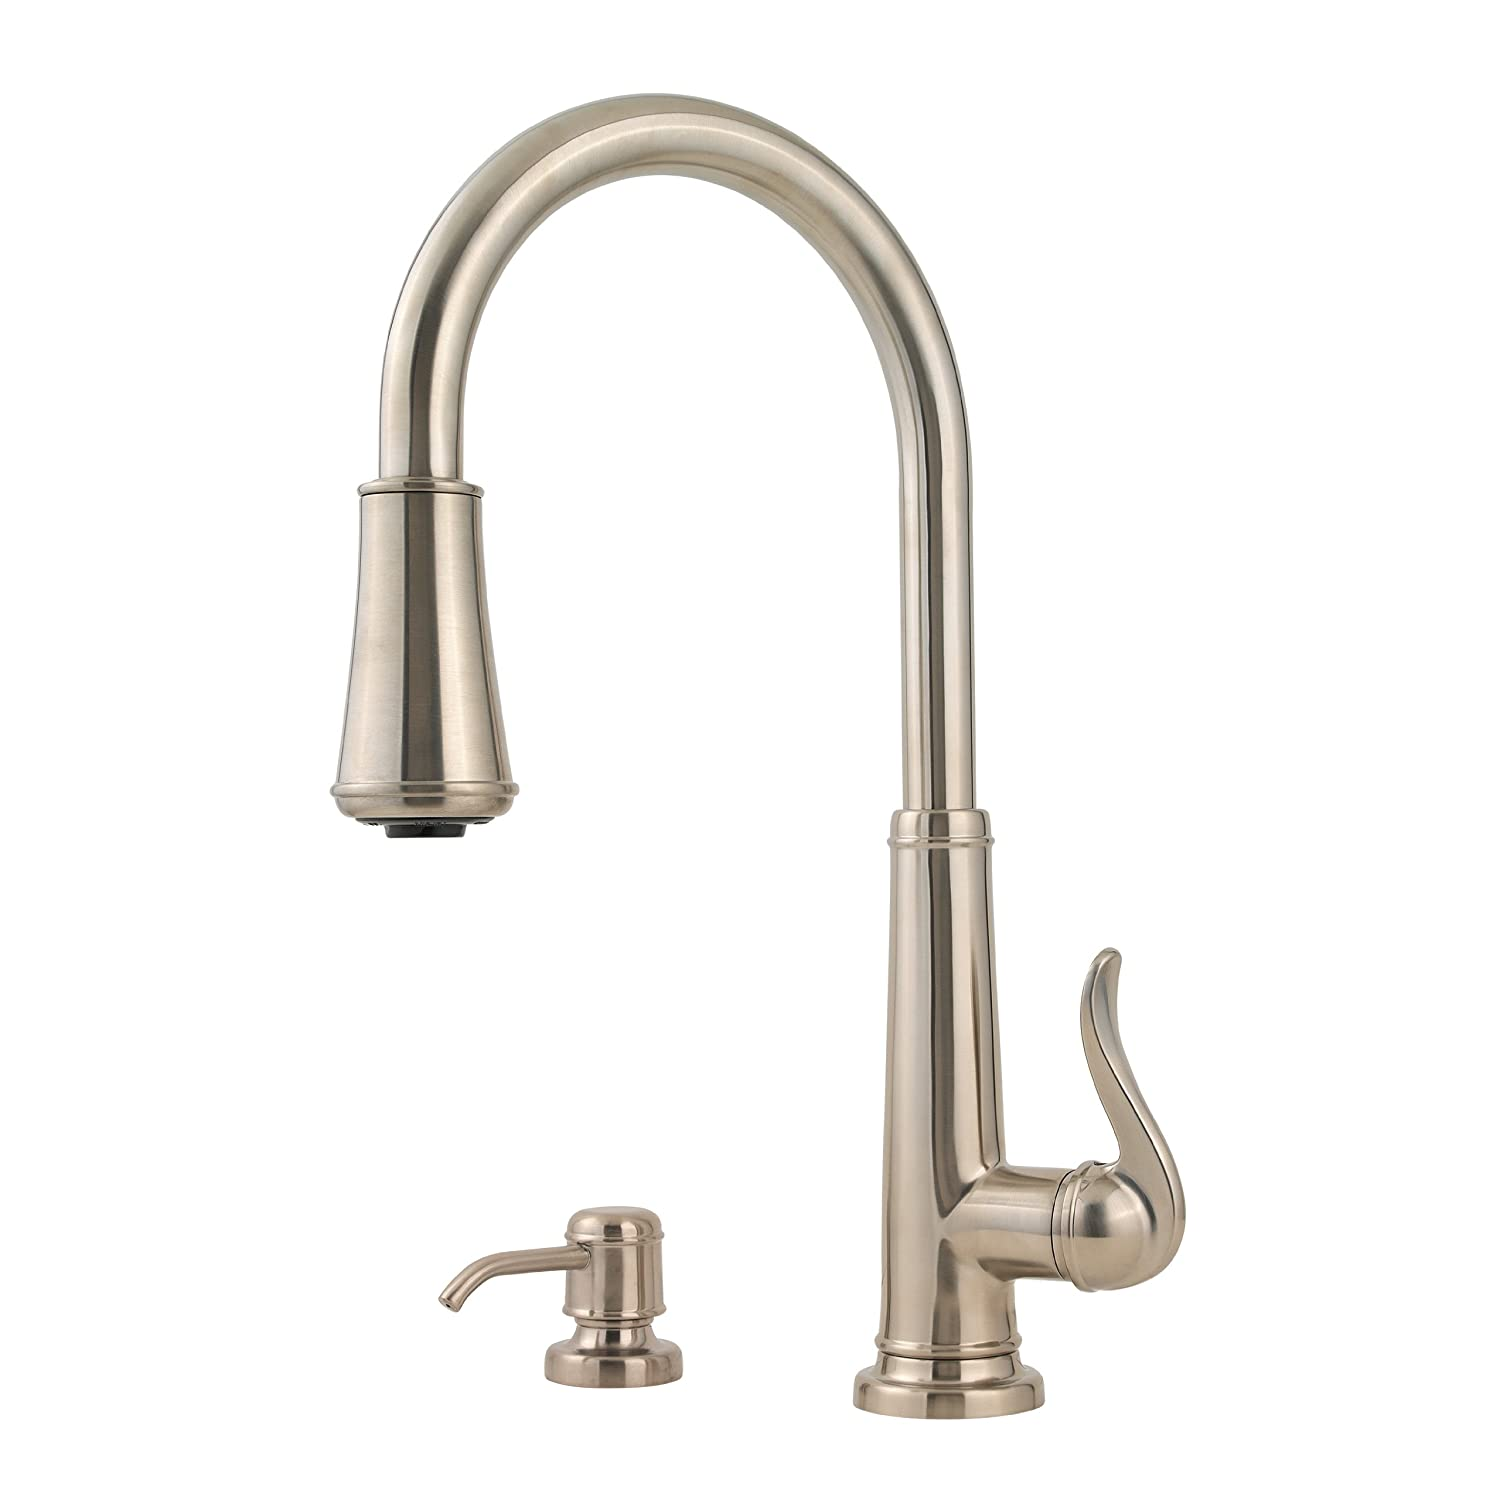 Price Pfister Ashfield Single Handle 1, 2, 3, or 4-Hole Pull-Down Lead Free Kitchen Faucet with Soap Dispenser free shipping high quality chrome brass kitchen faucet single handle sink mixer tap pull put sprayer swivel spout faucet